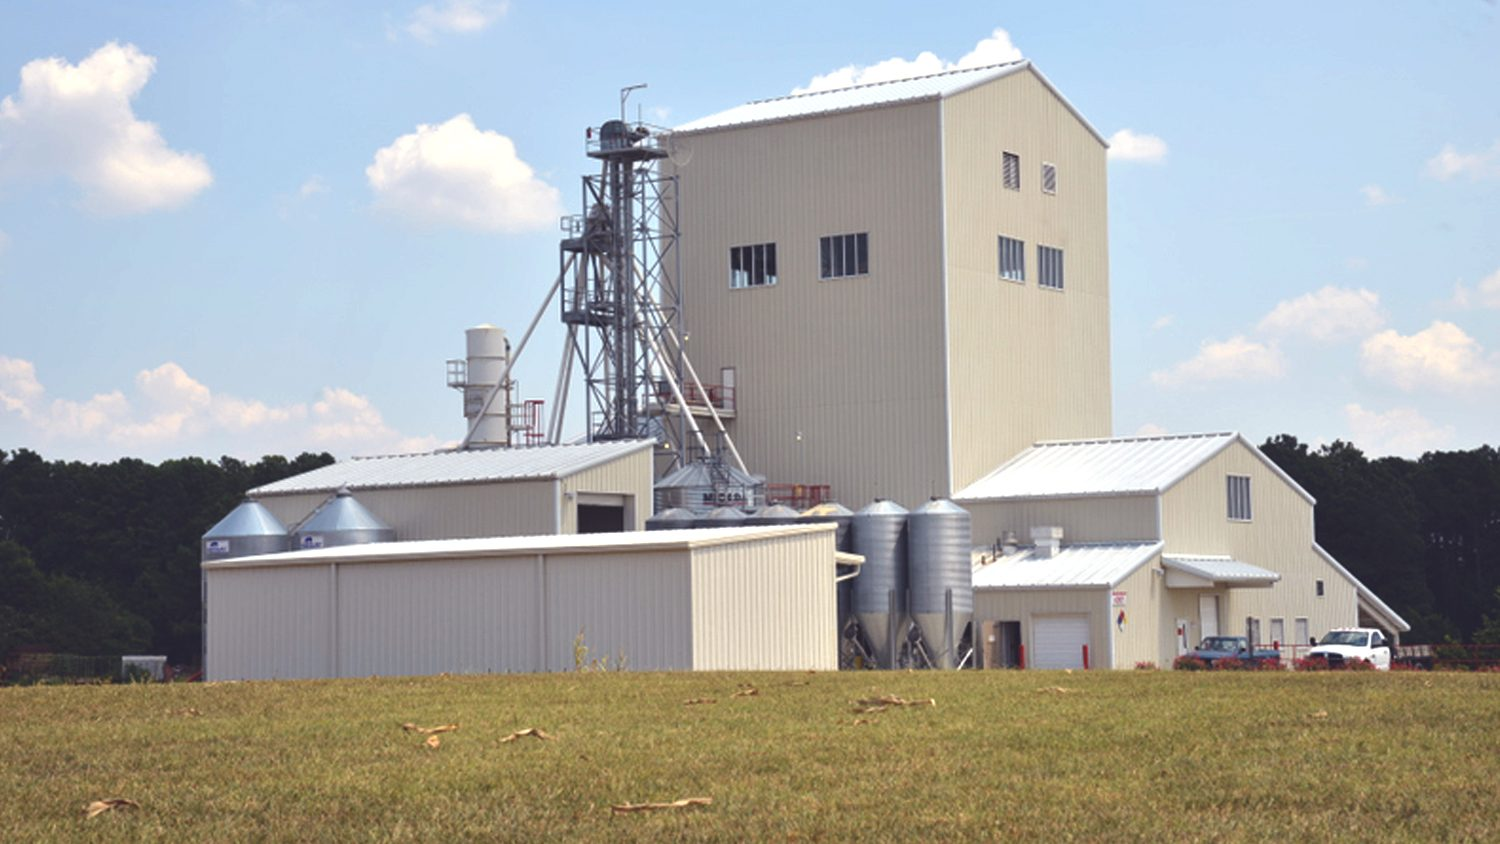 The NC State feed mill manufactures feed for all the animals at the Lake Wheeler Road Field Laboratory